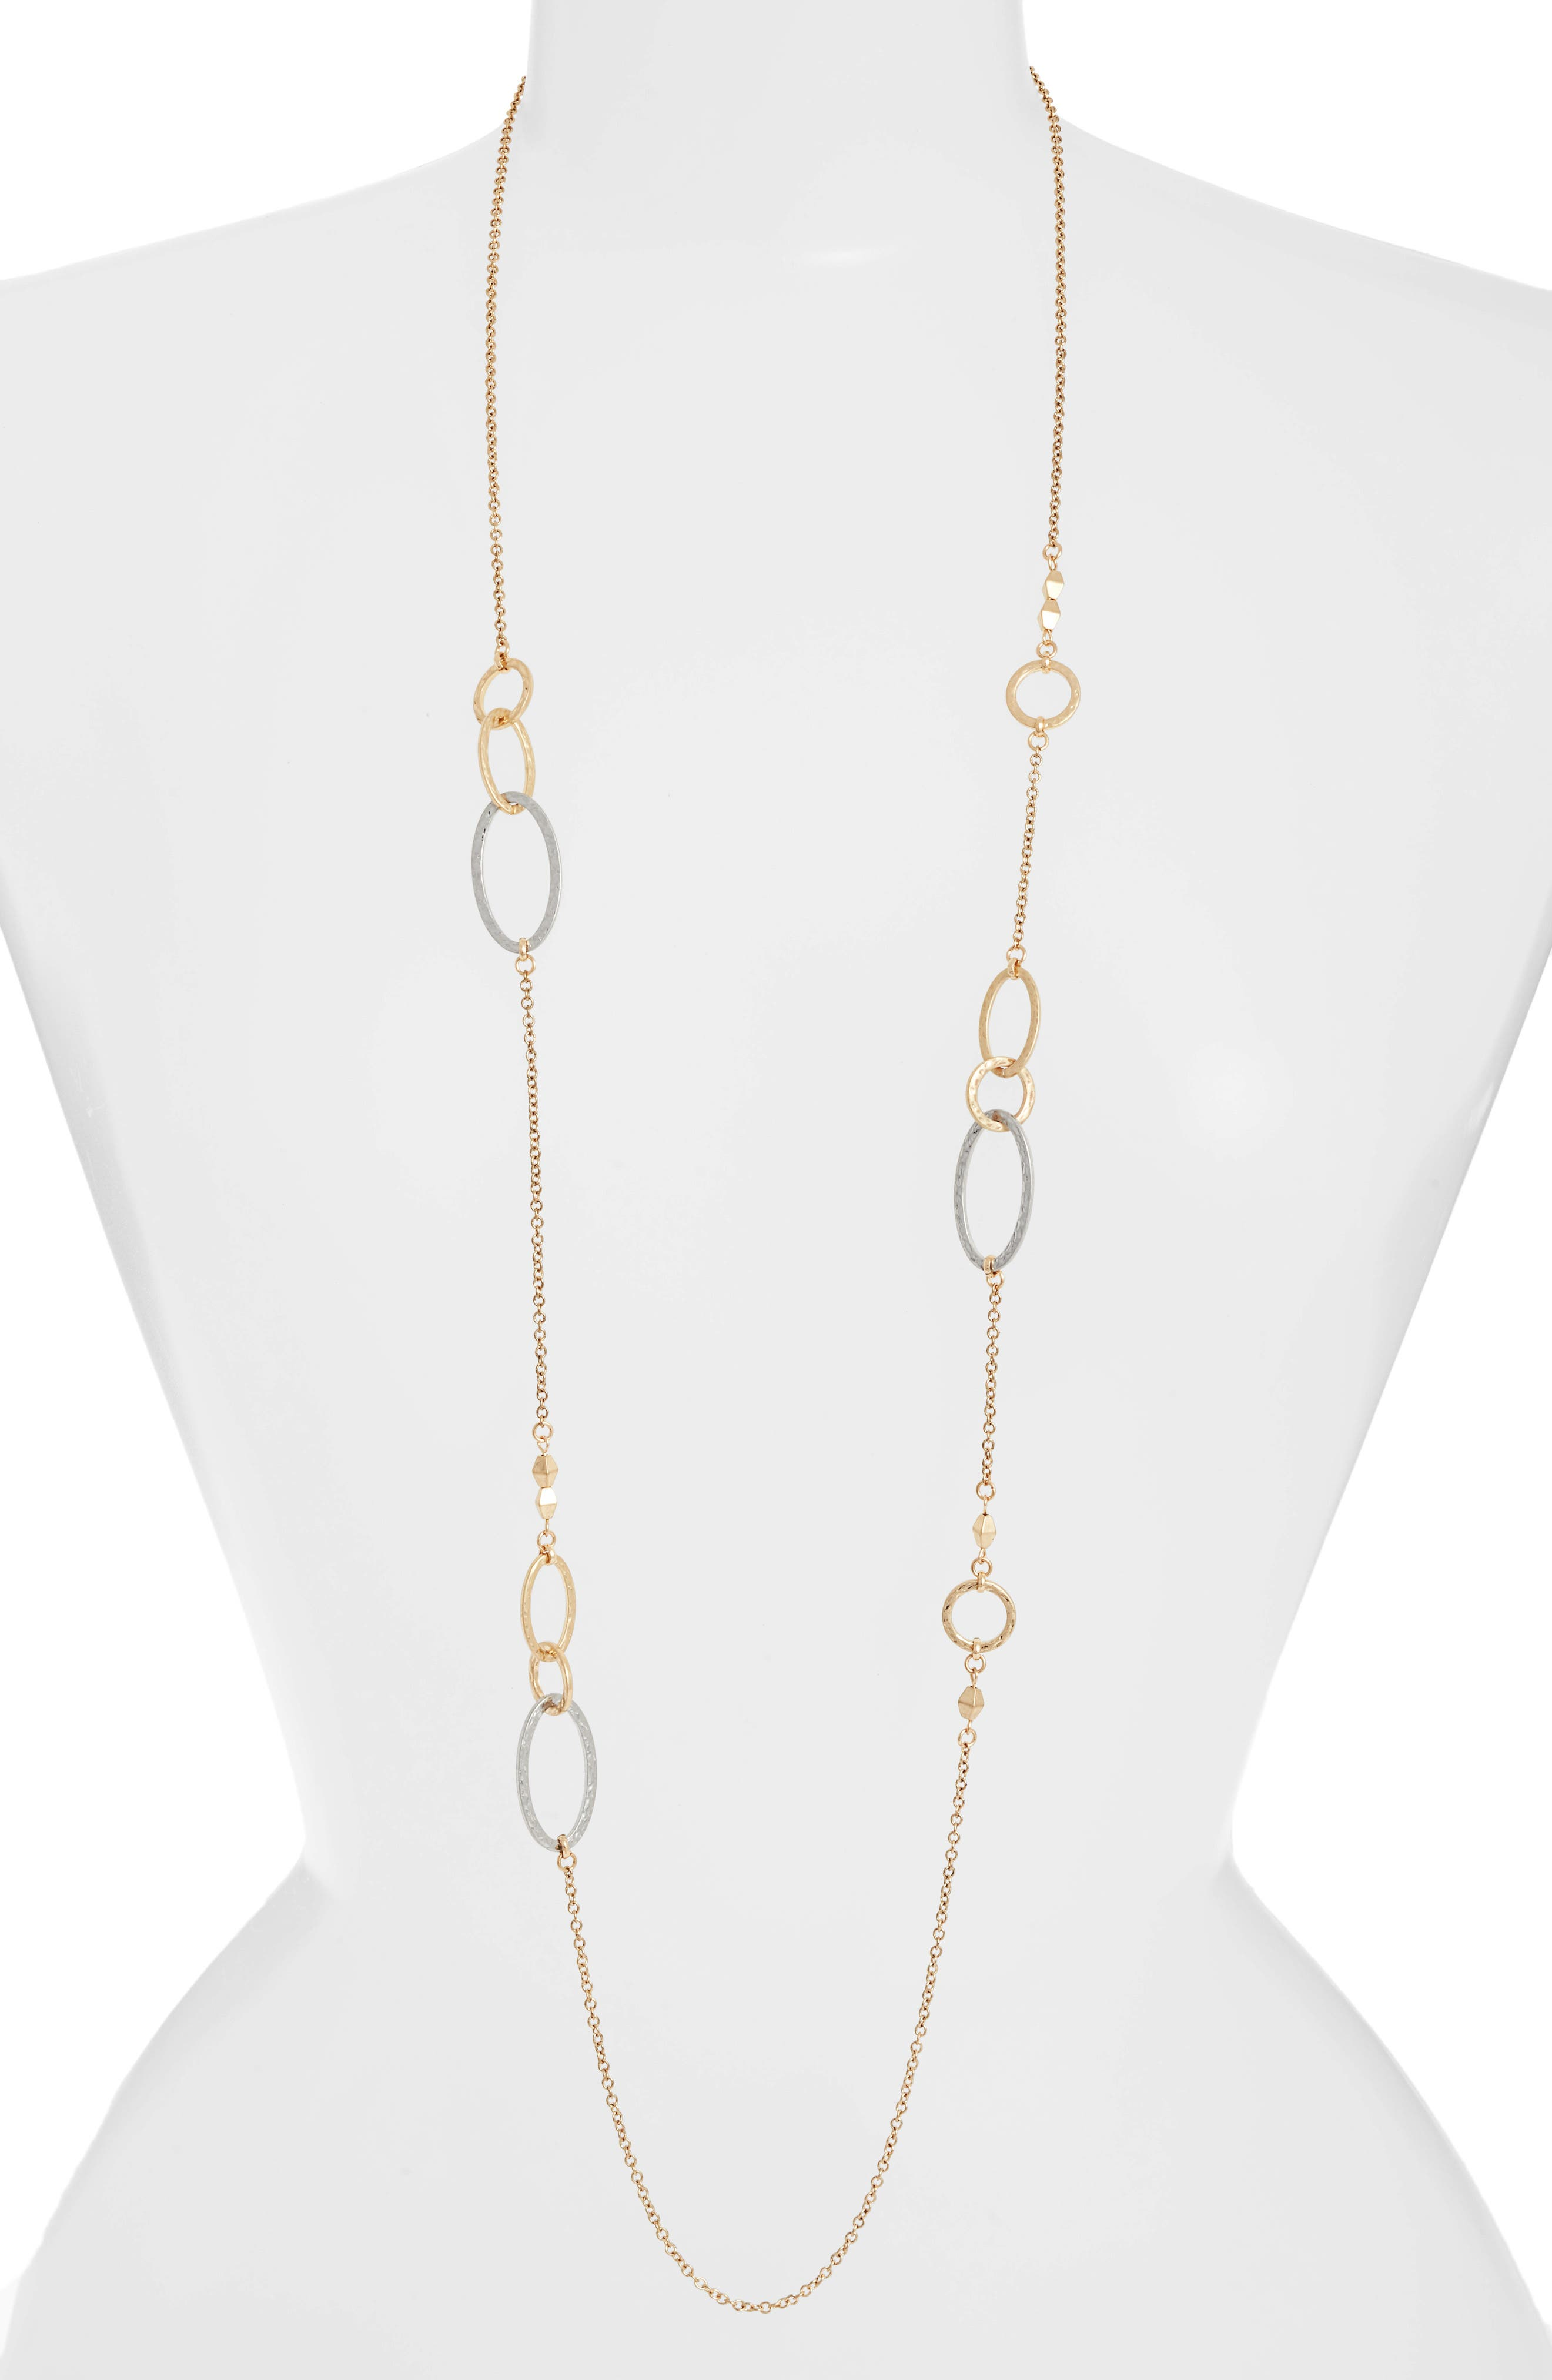 Two-Tone Oval Station Necklace,                             Main thumbnail 1, color,                             Rhodium- Gold